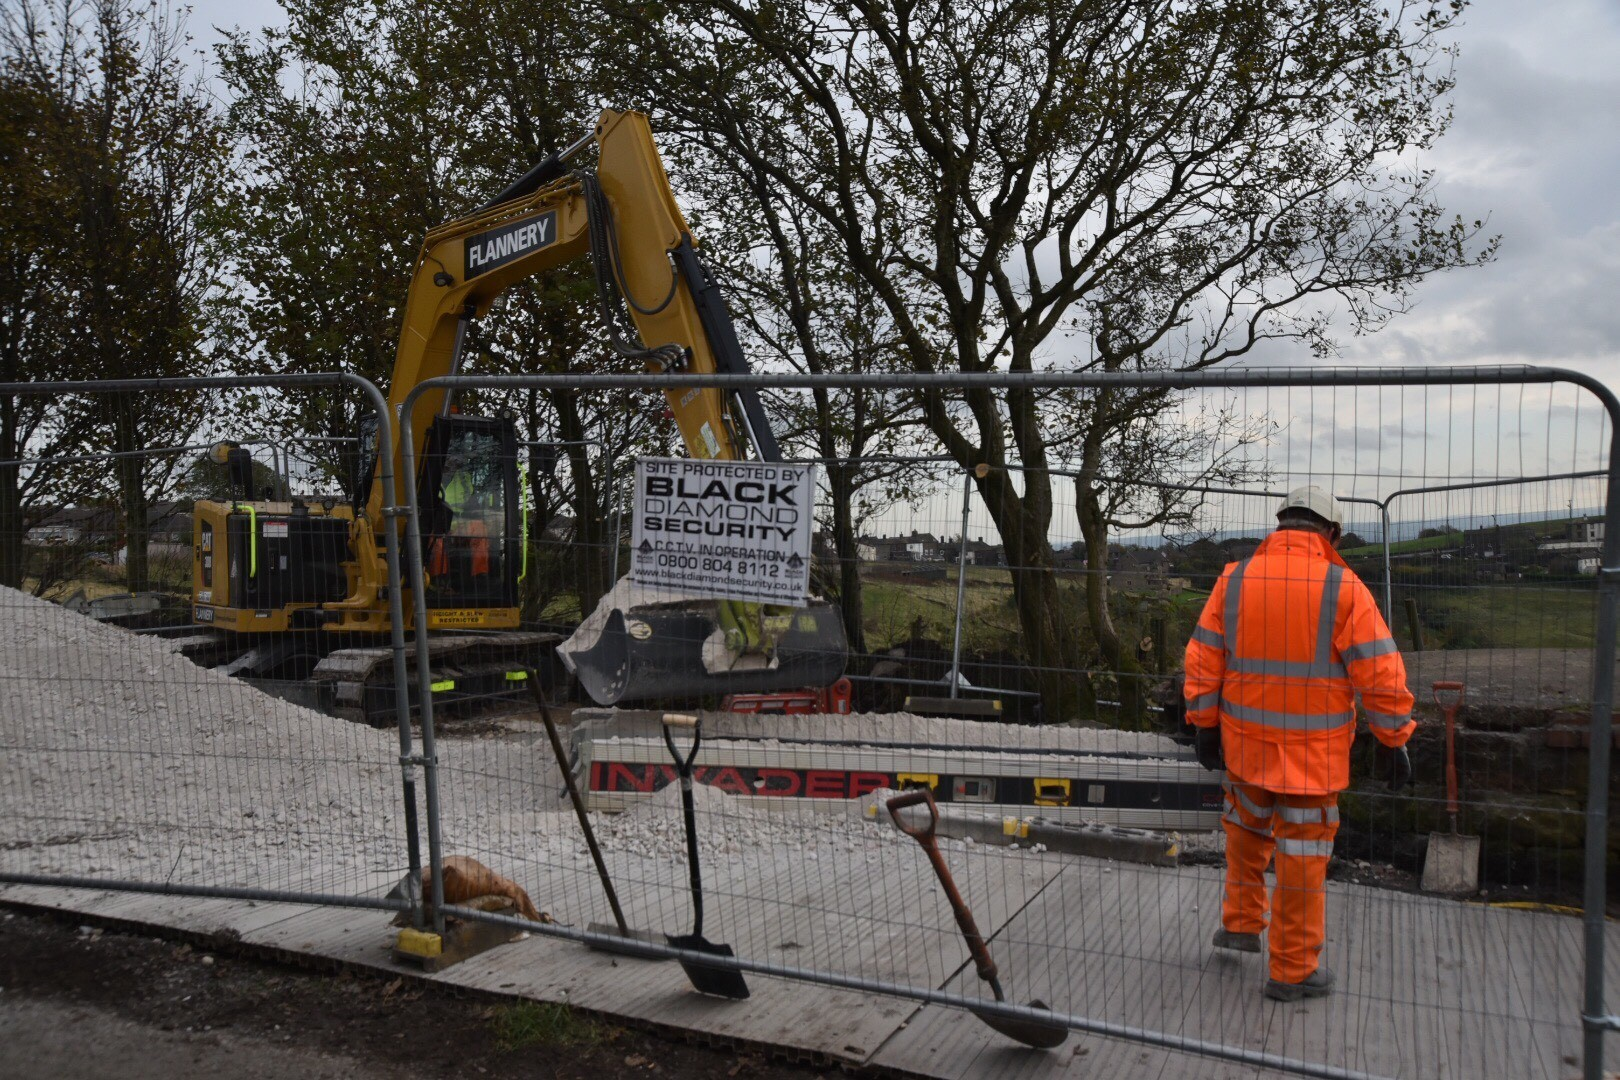 Emergency works begin at Queensbury Tunnel amid safety fears